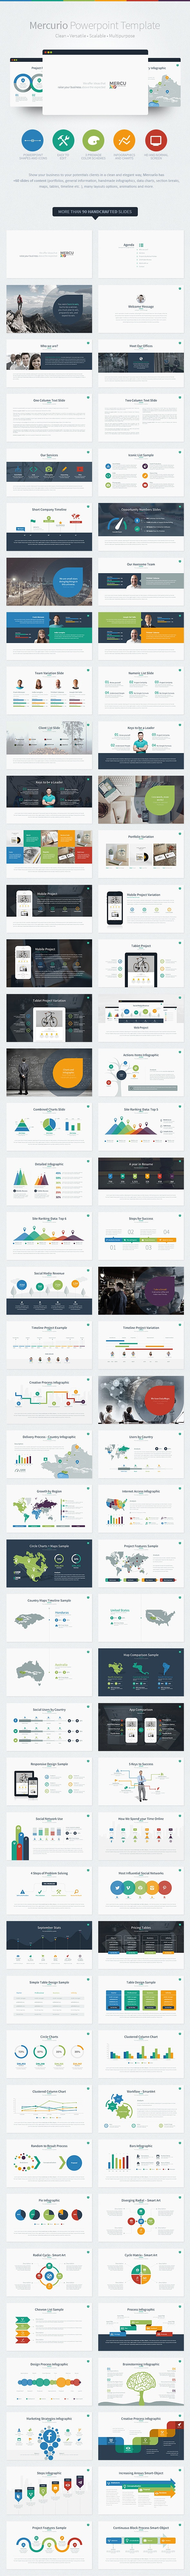 Mercurio PowerPoint Presentation Template - PowerPoint Templates Presentation Templates